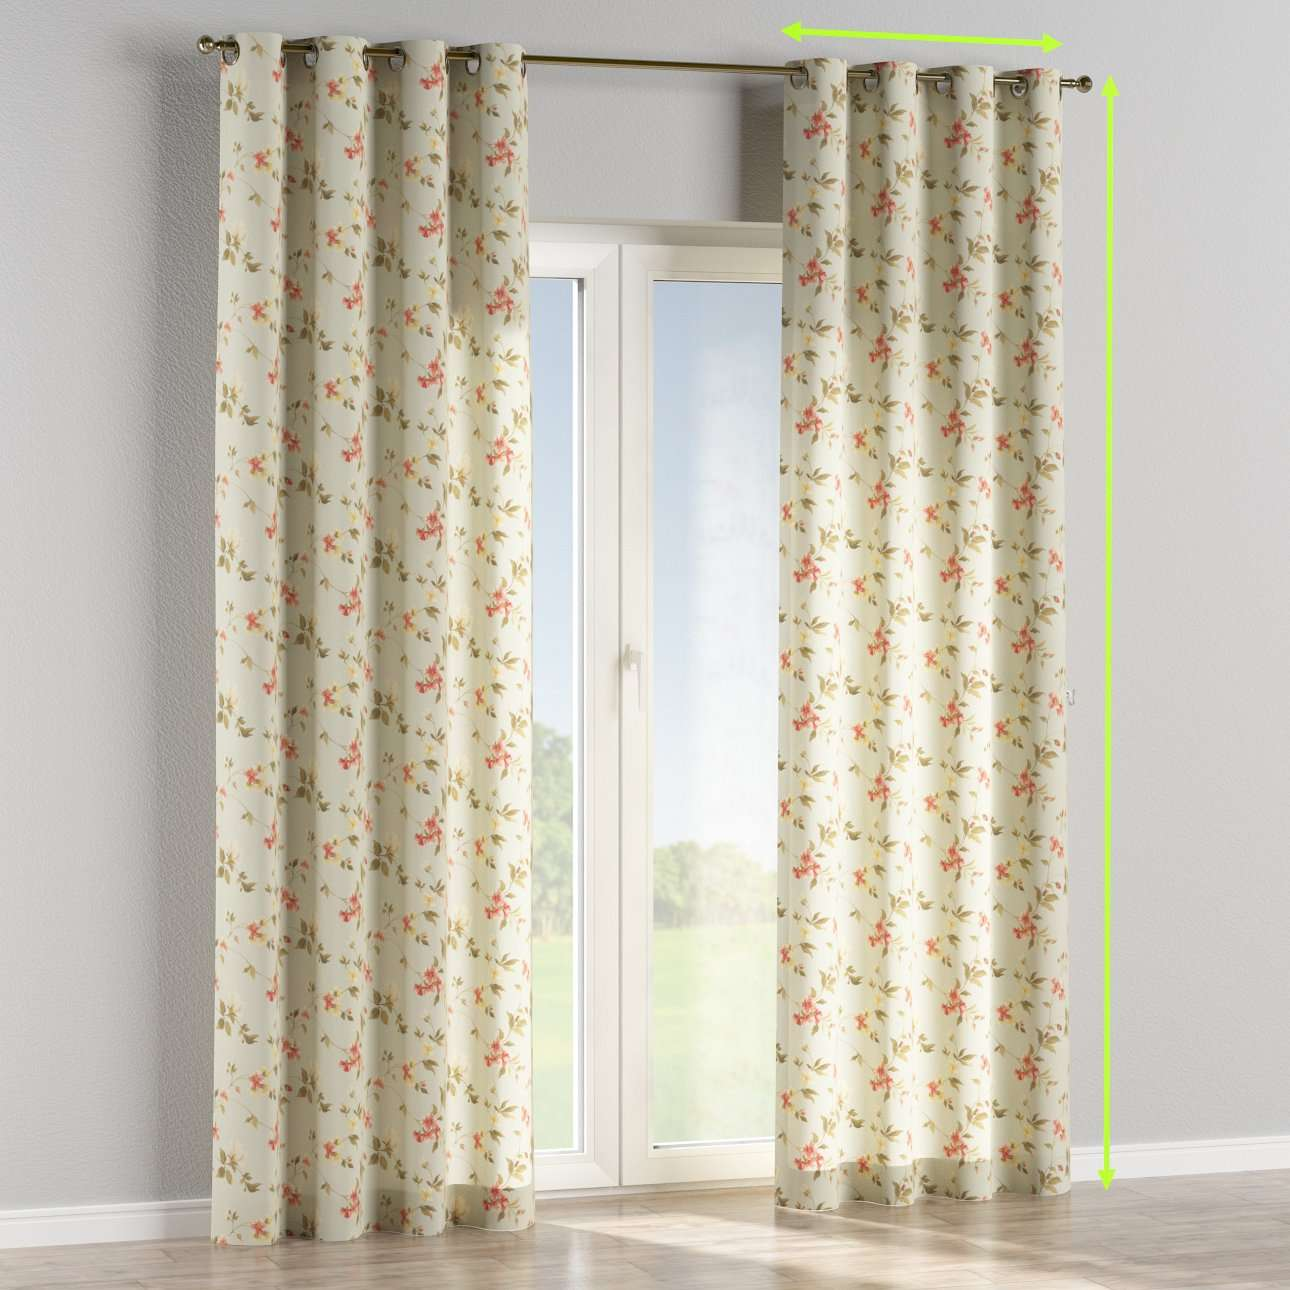 Eyelet curtains in collection Londres, fabric: 124-65